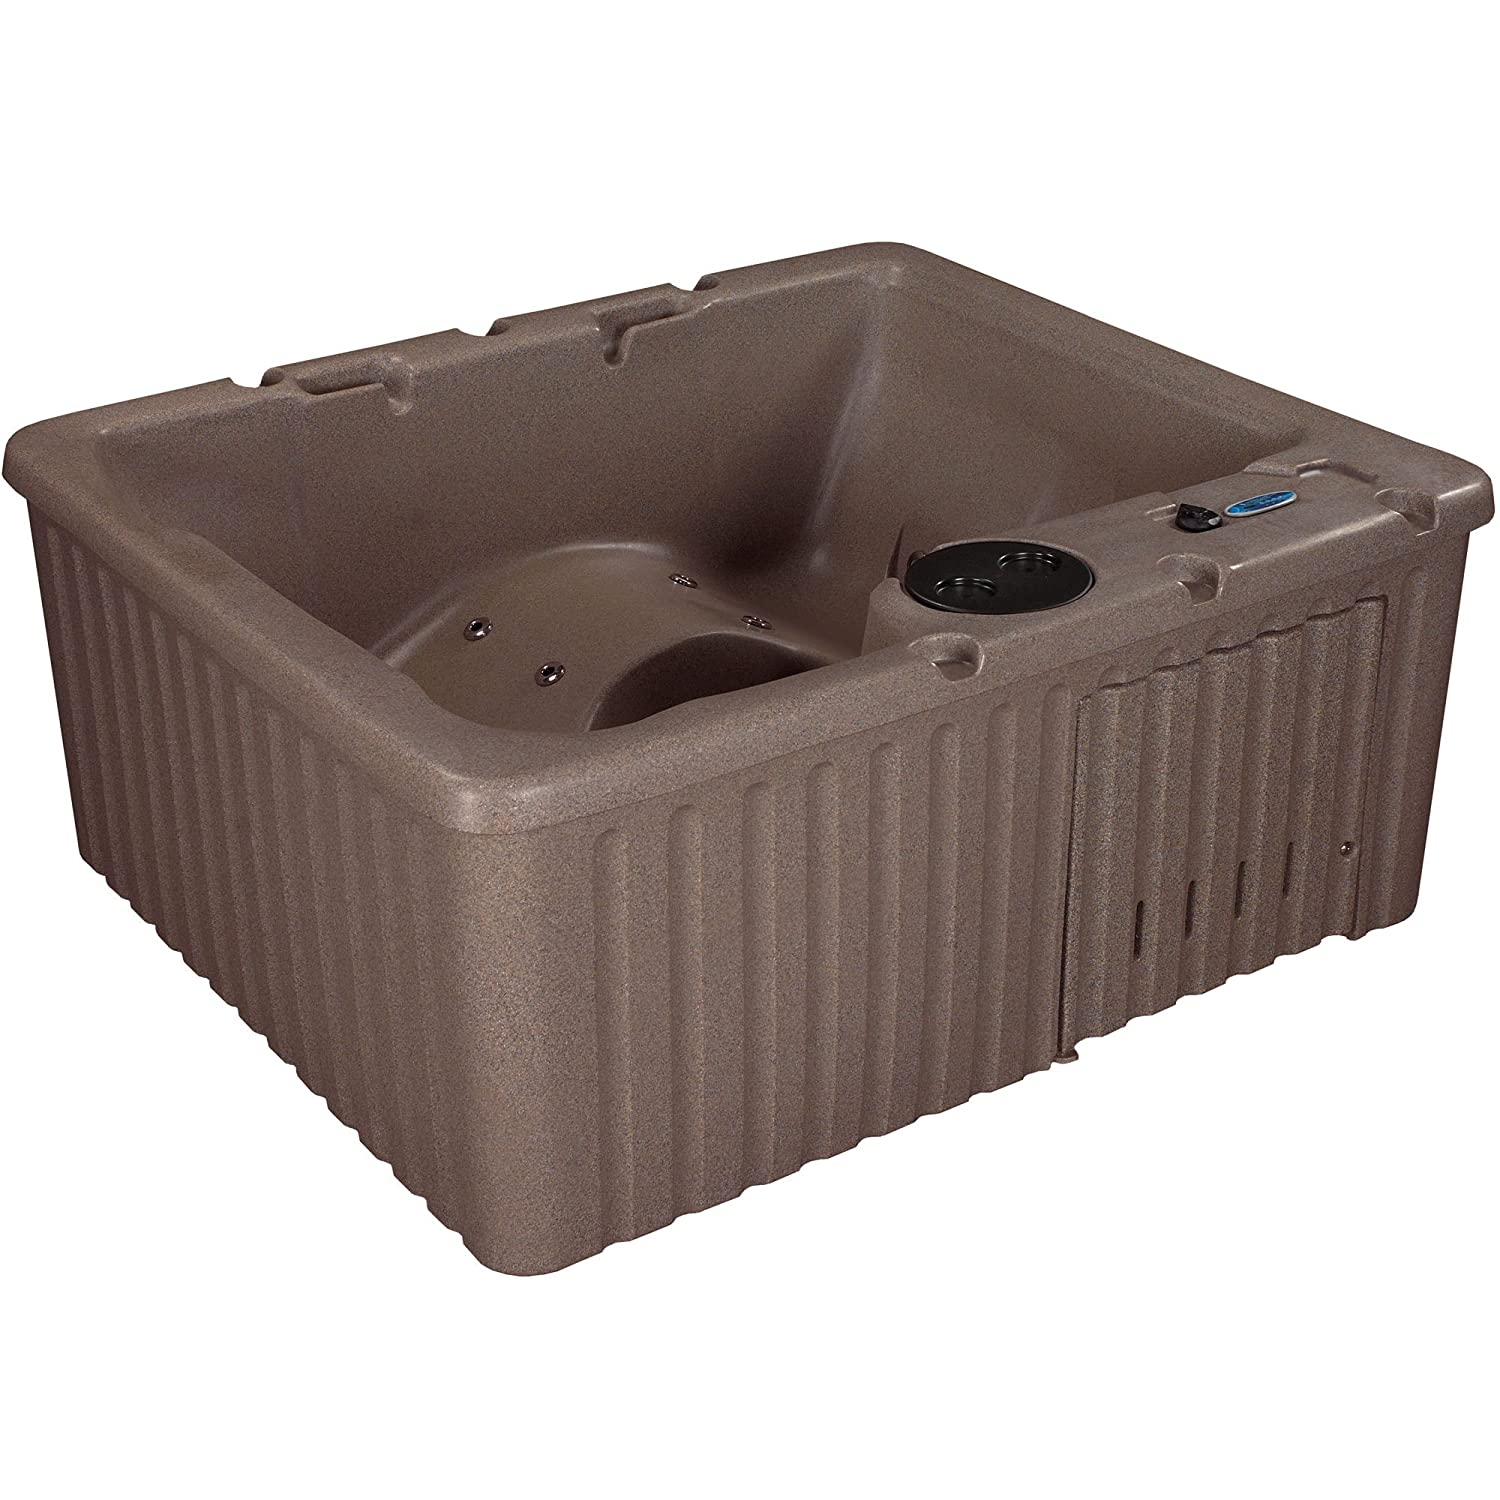 Essential Hot Tubs 14-Jet Newport Hot Tub